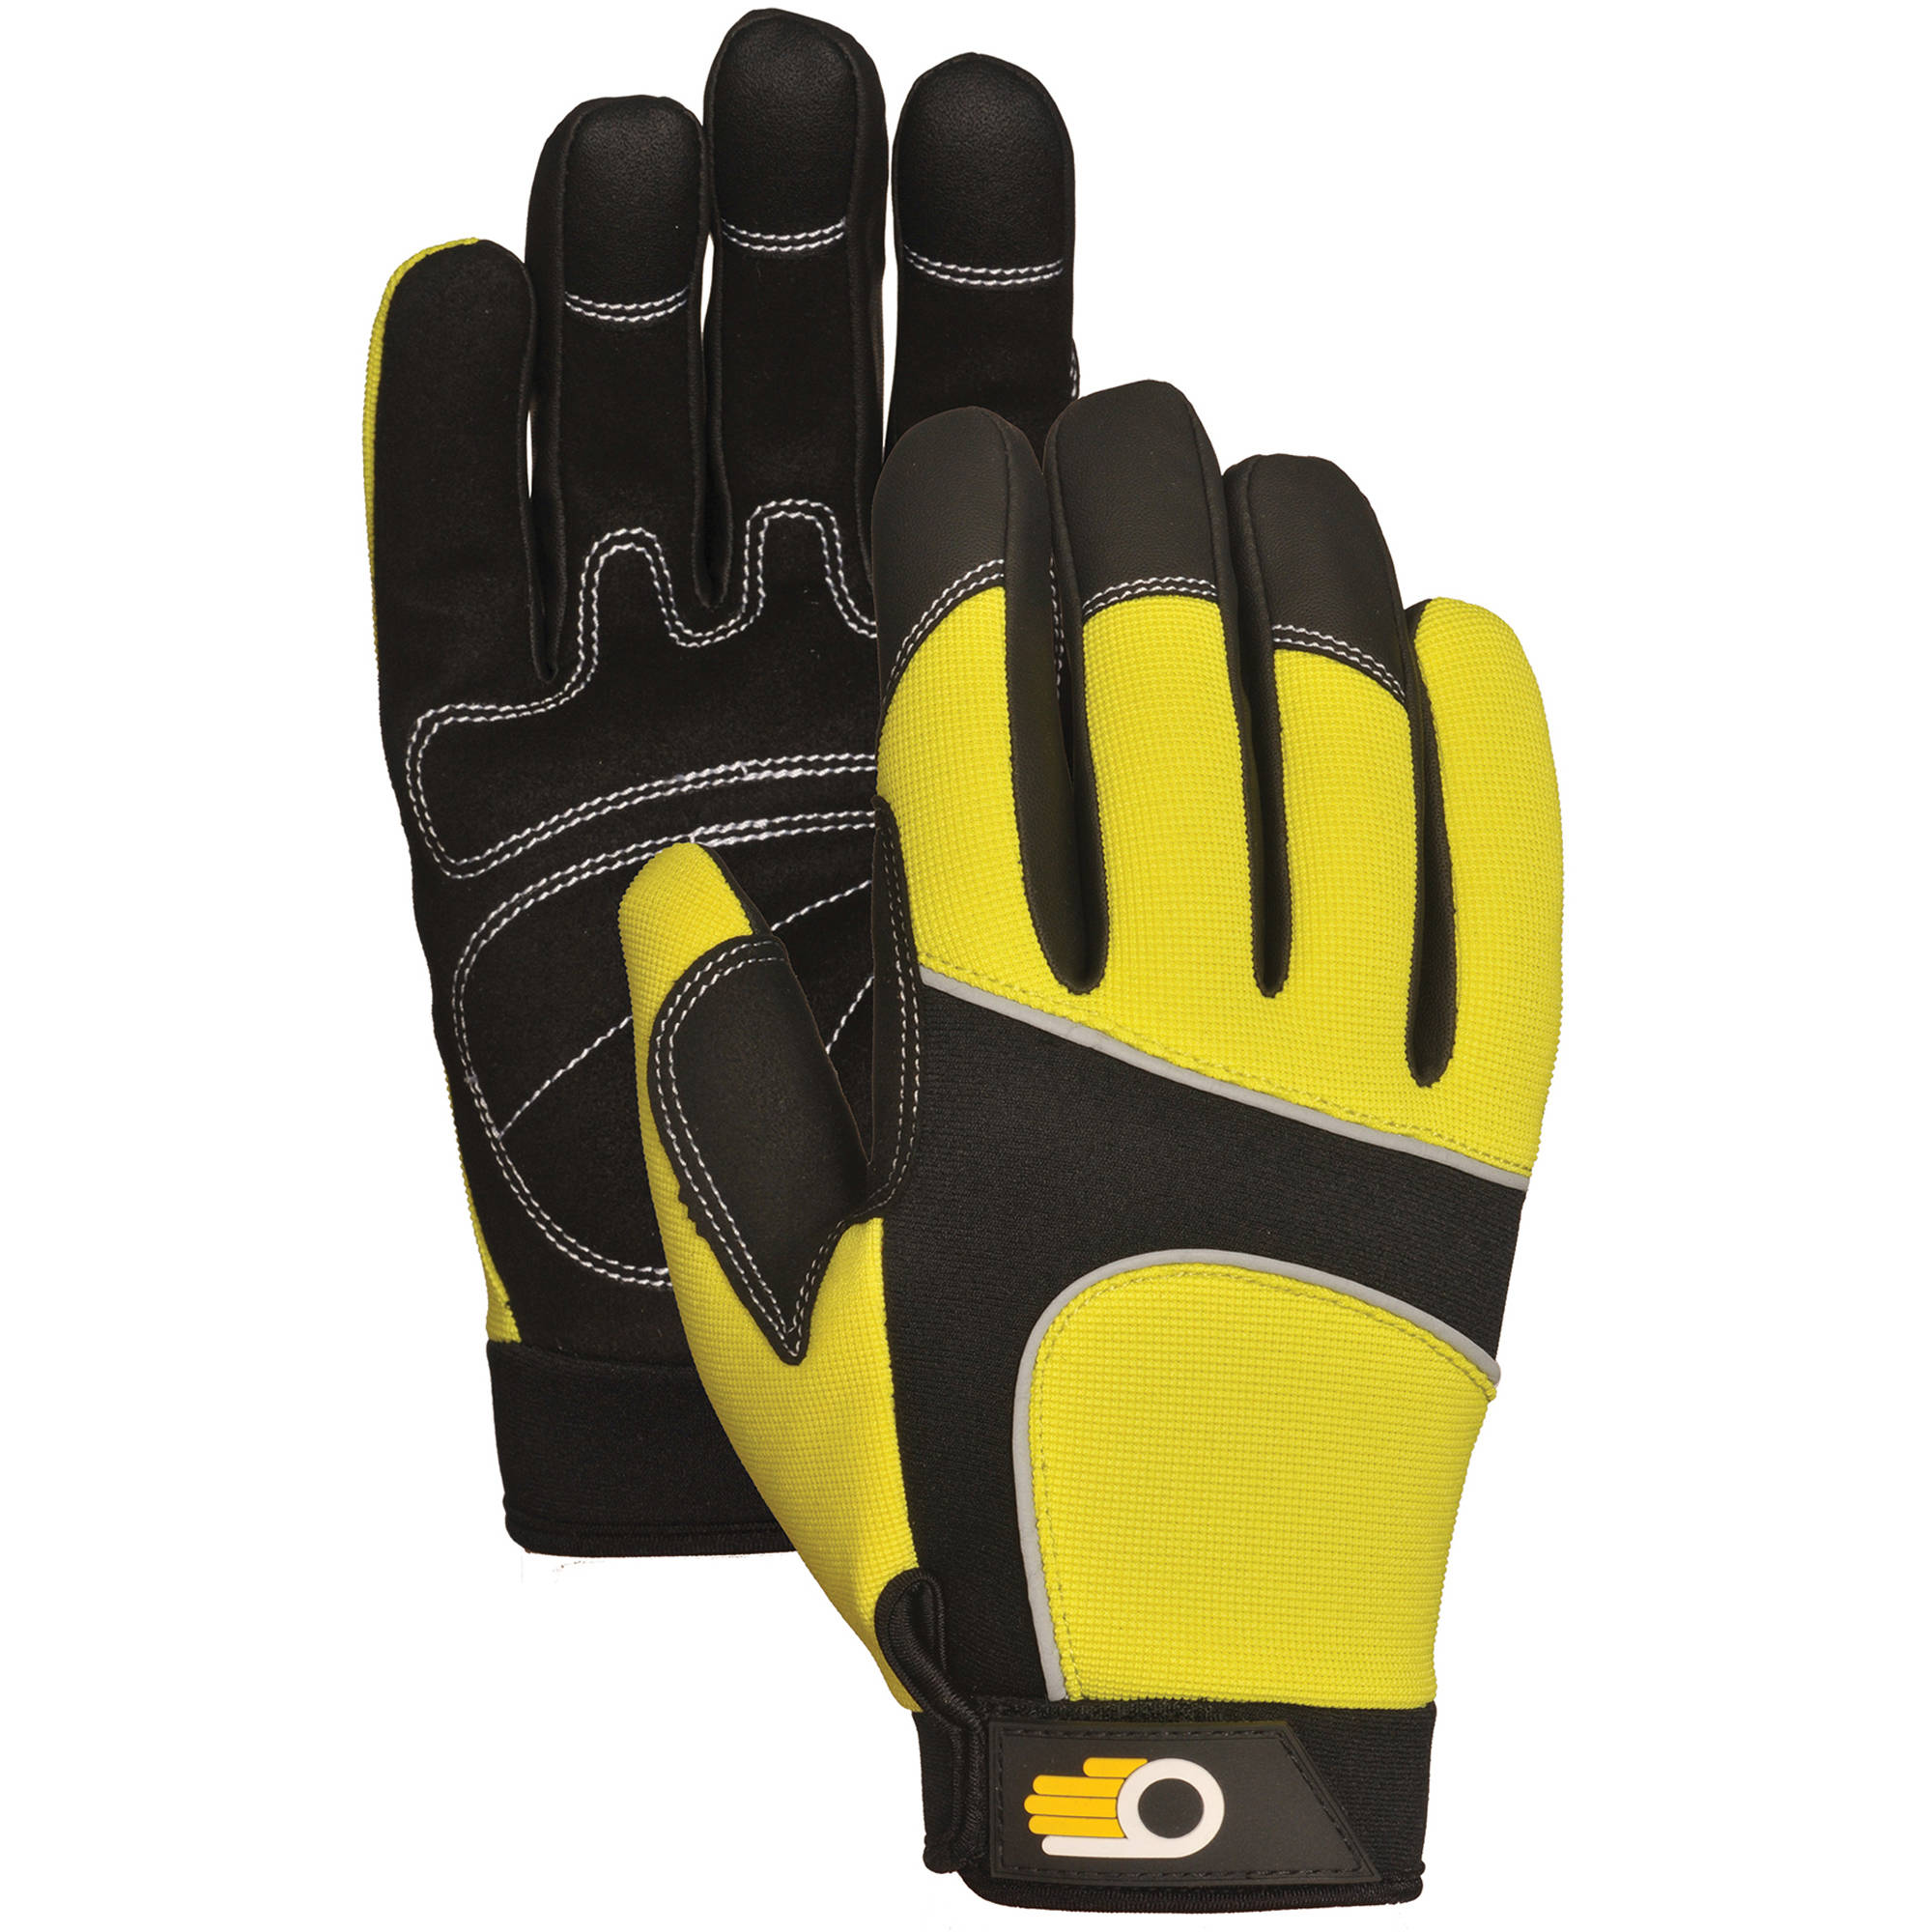 Bellingham Glove C7782HVXL XL Men's Performance Hi Viz Synthetic Palm Gloves